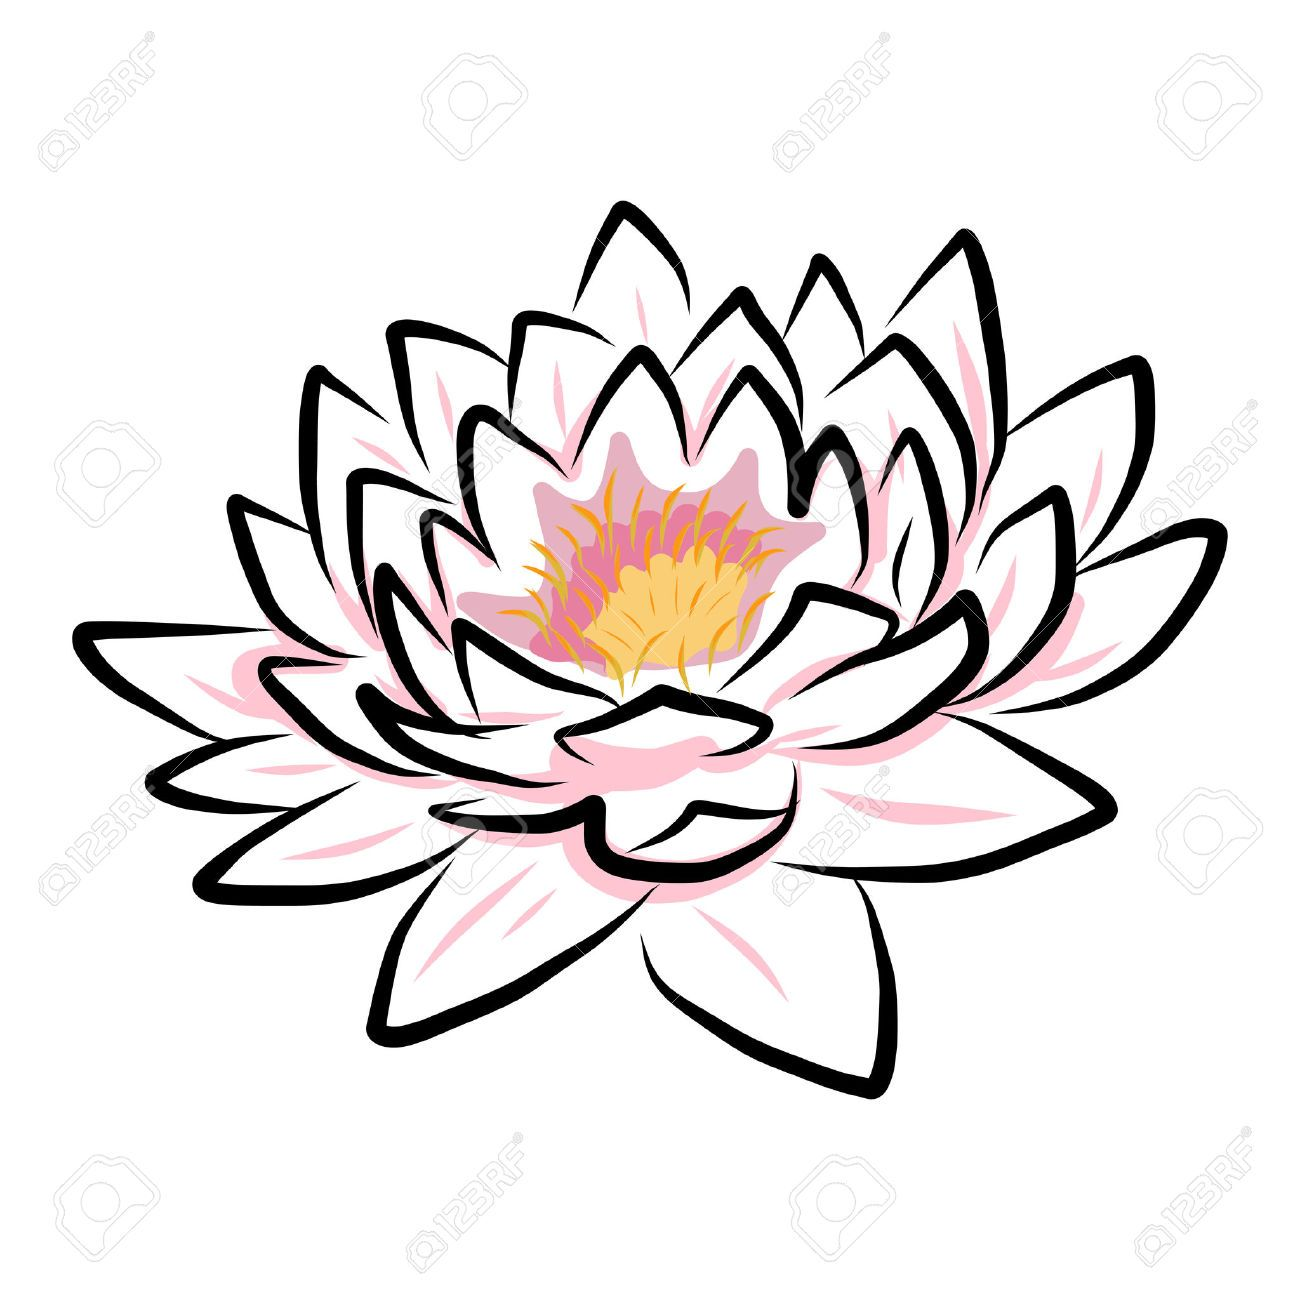 Pin By Taylor Wetzel On Hurts So Good Pinterest Lotus Flower